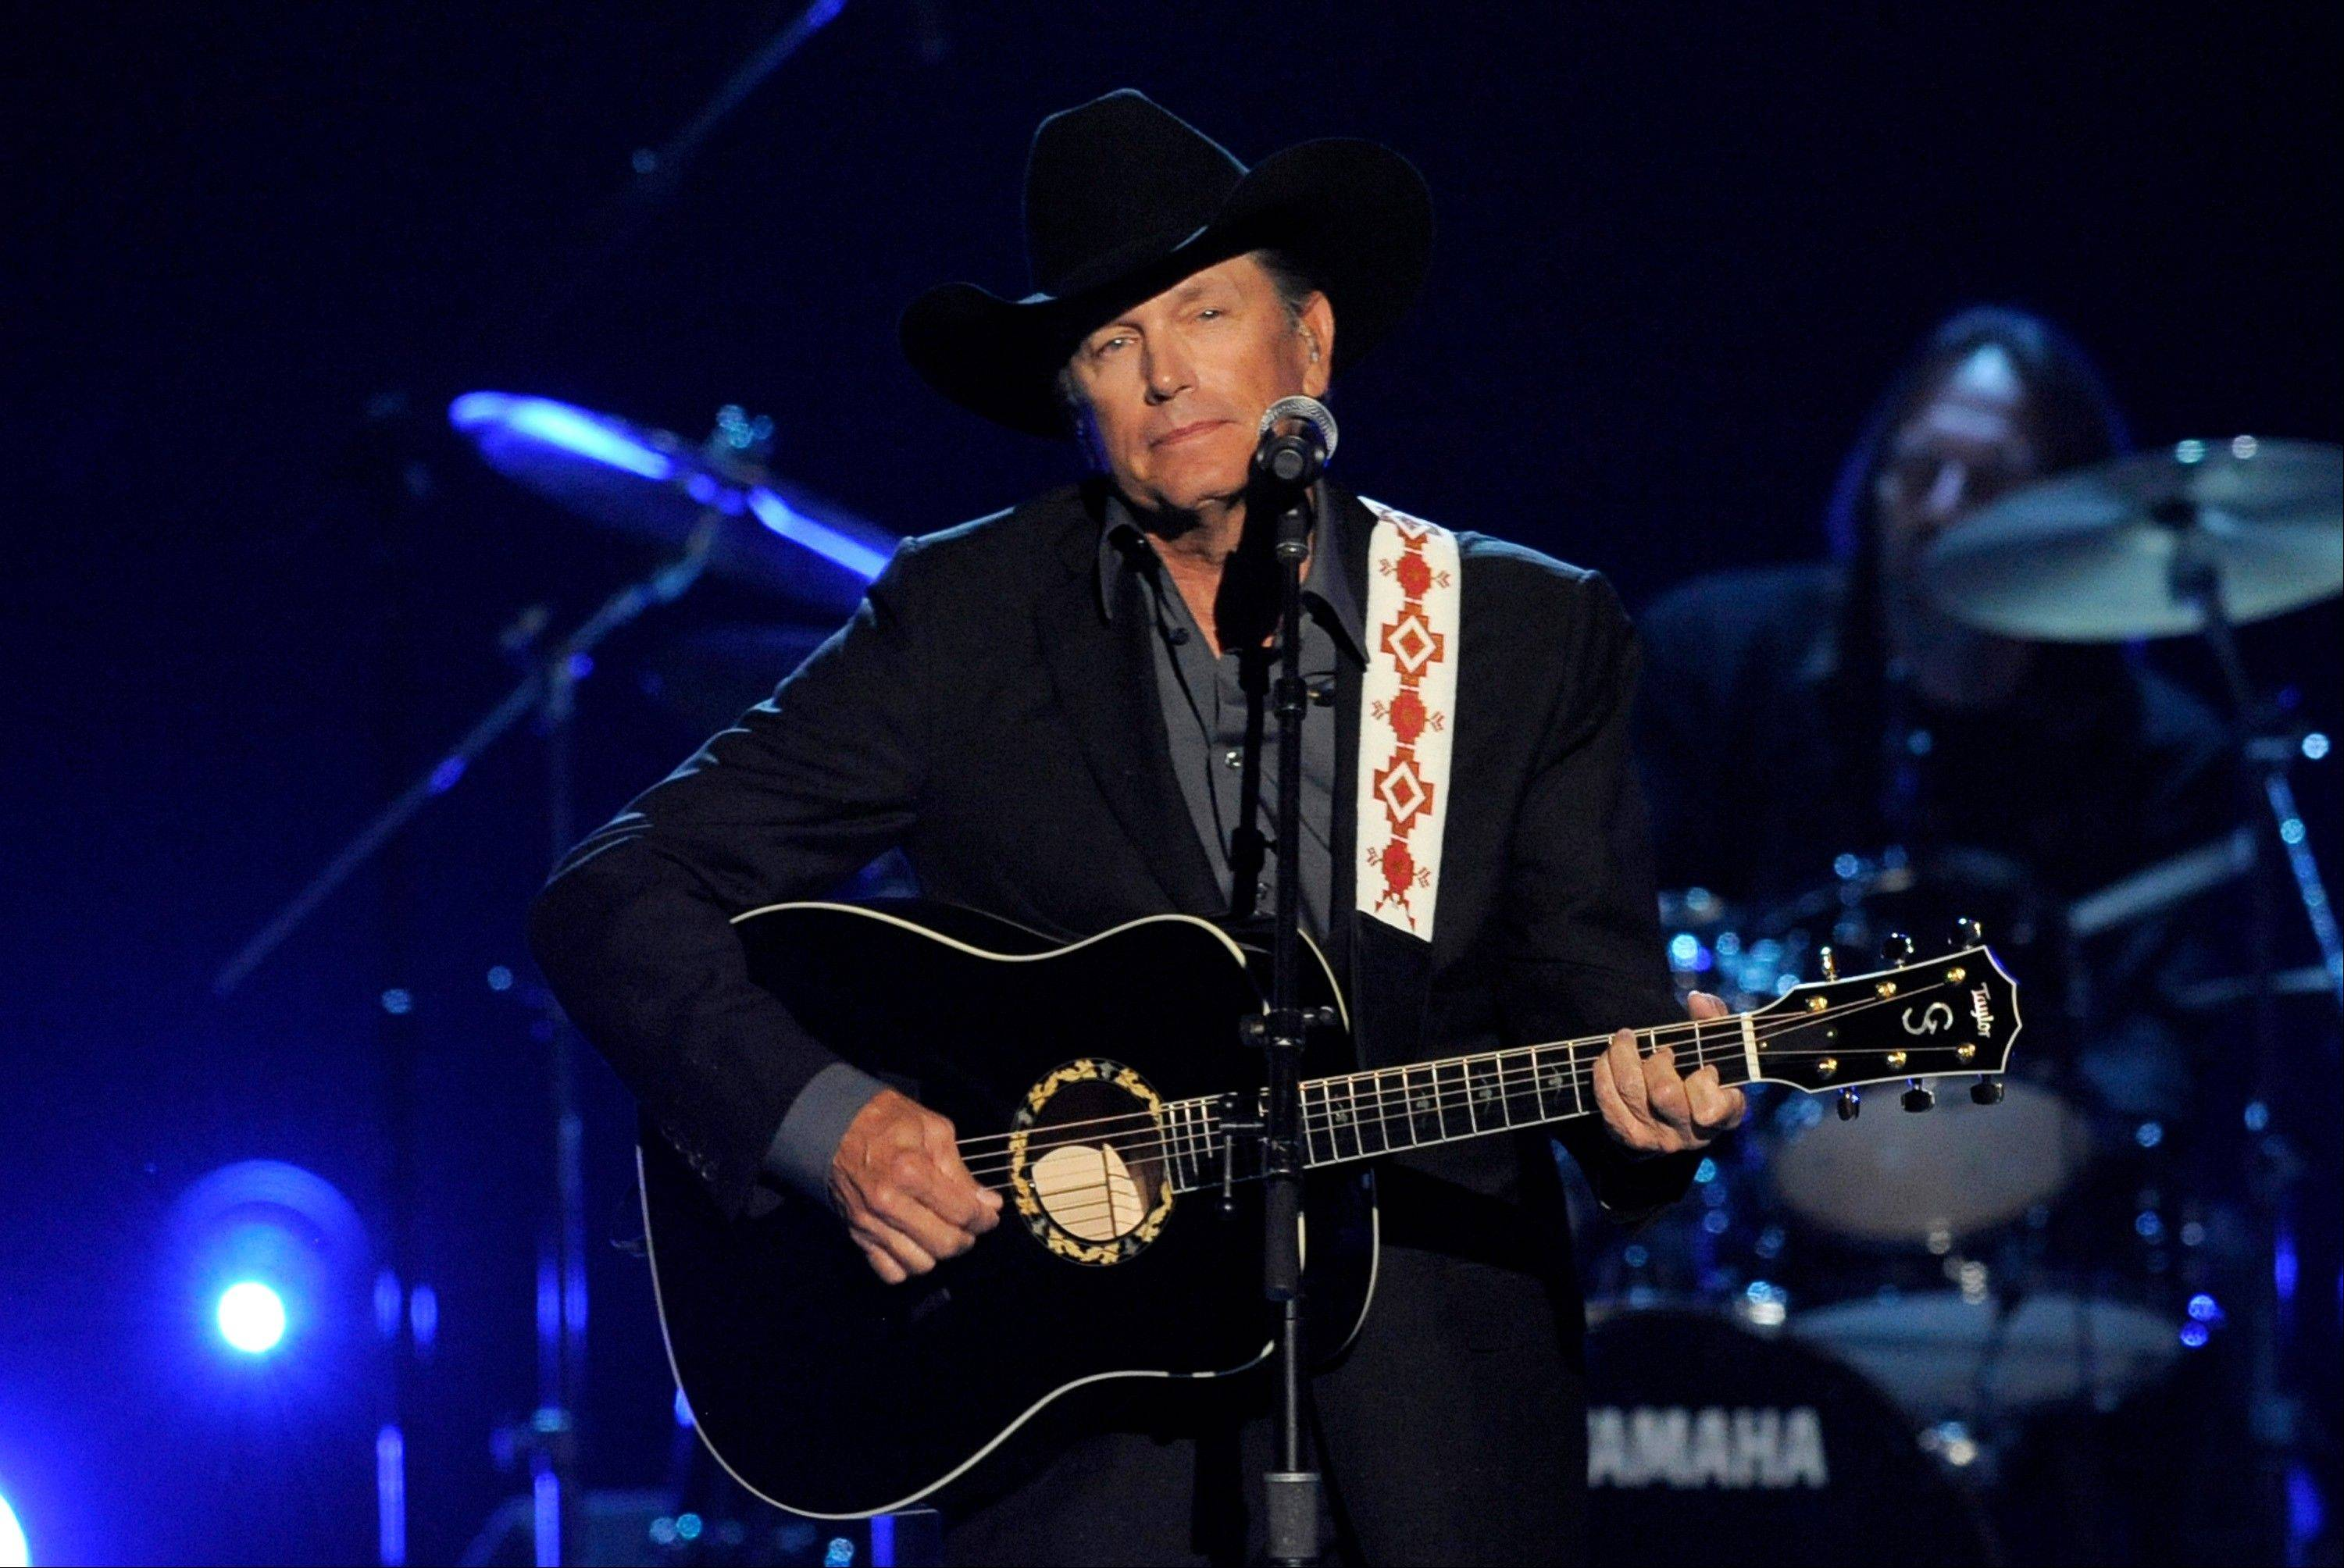 George Strait, the Country Music Association's most-nominated artist, is up for entertainer of the year Wednesday night.